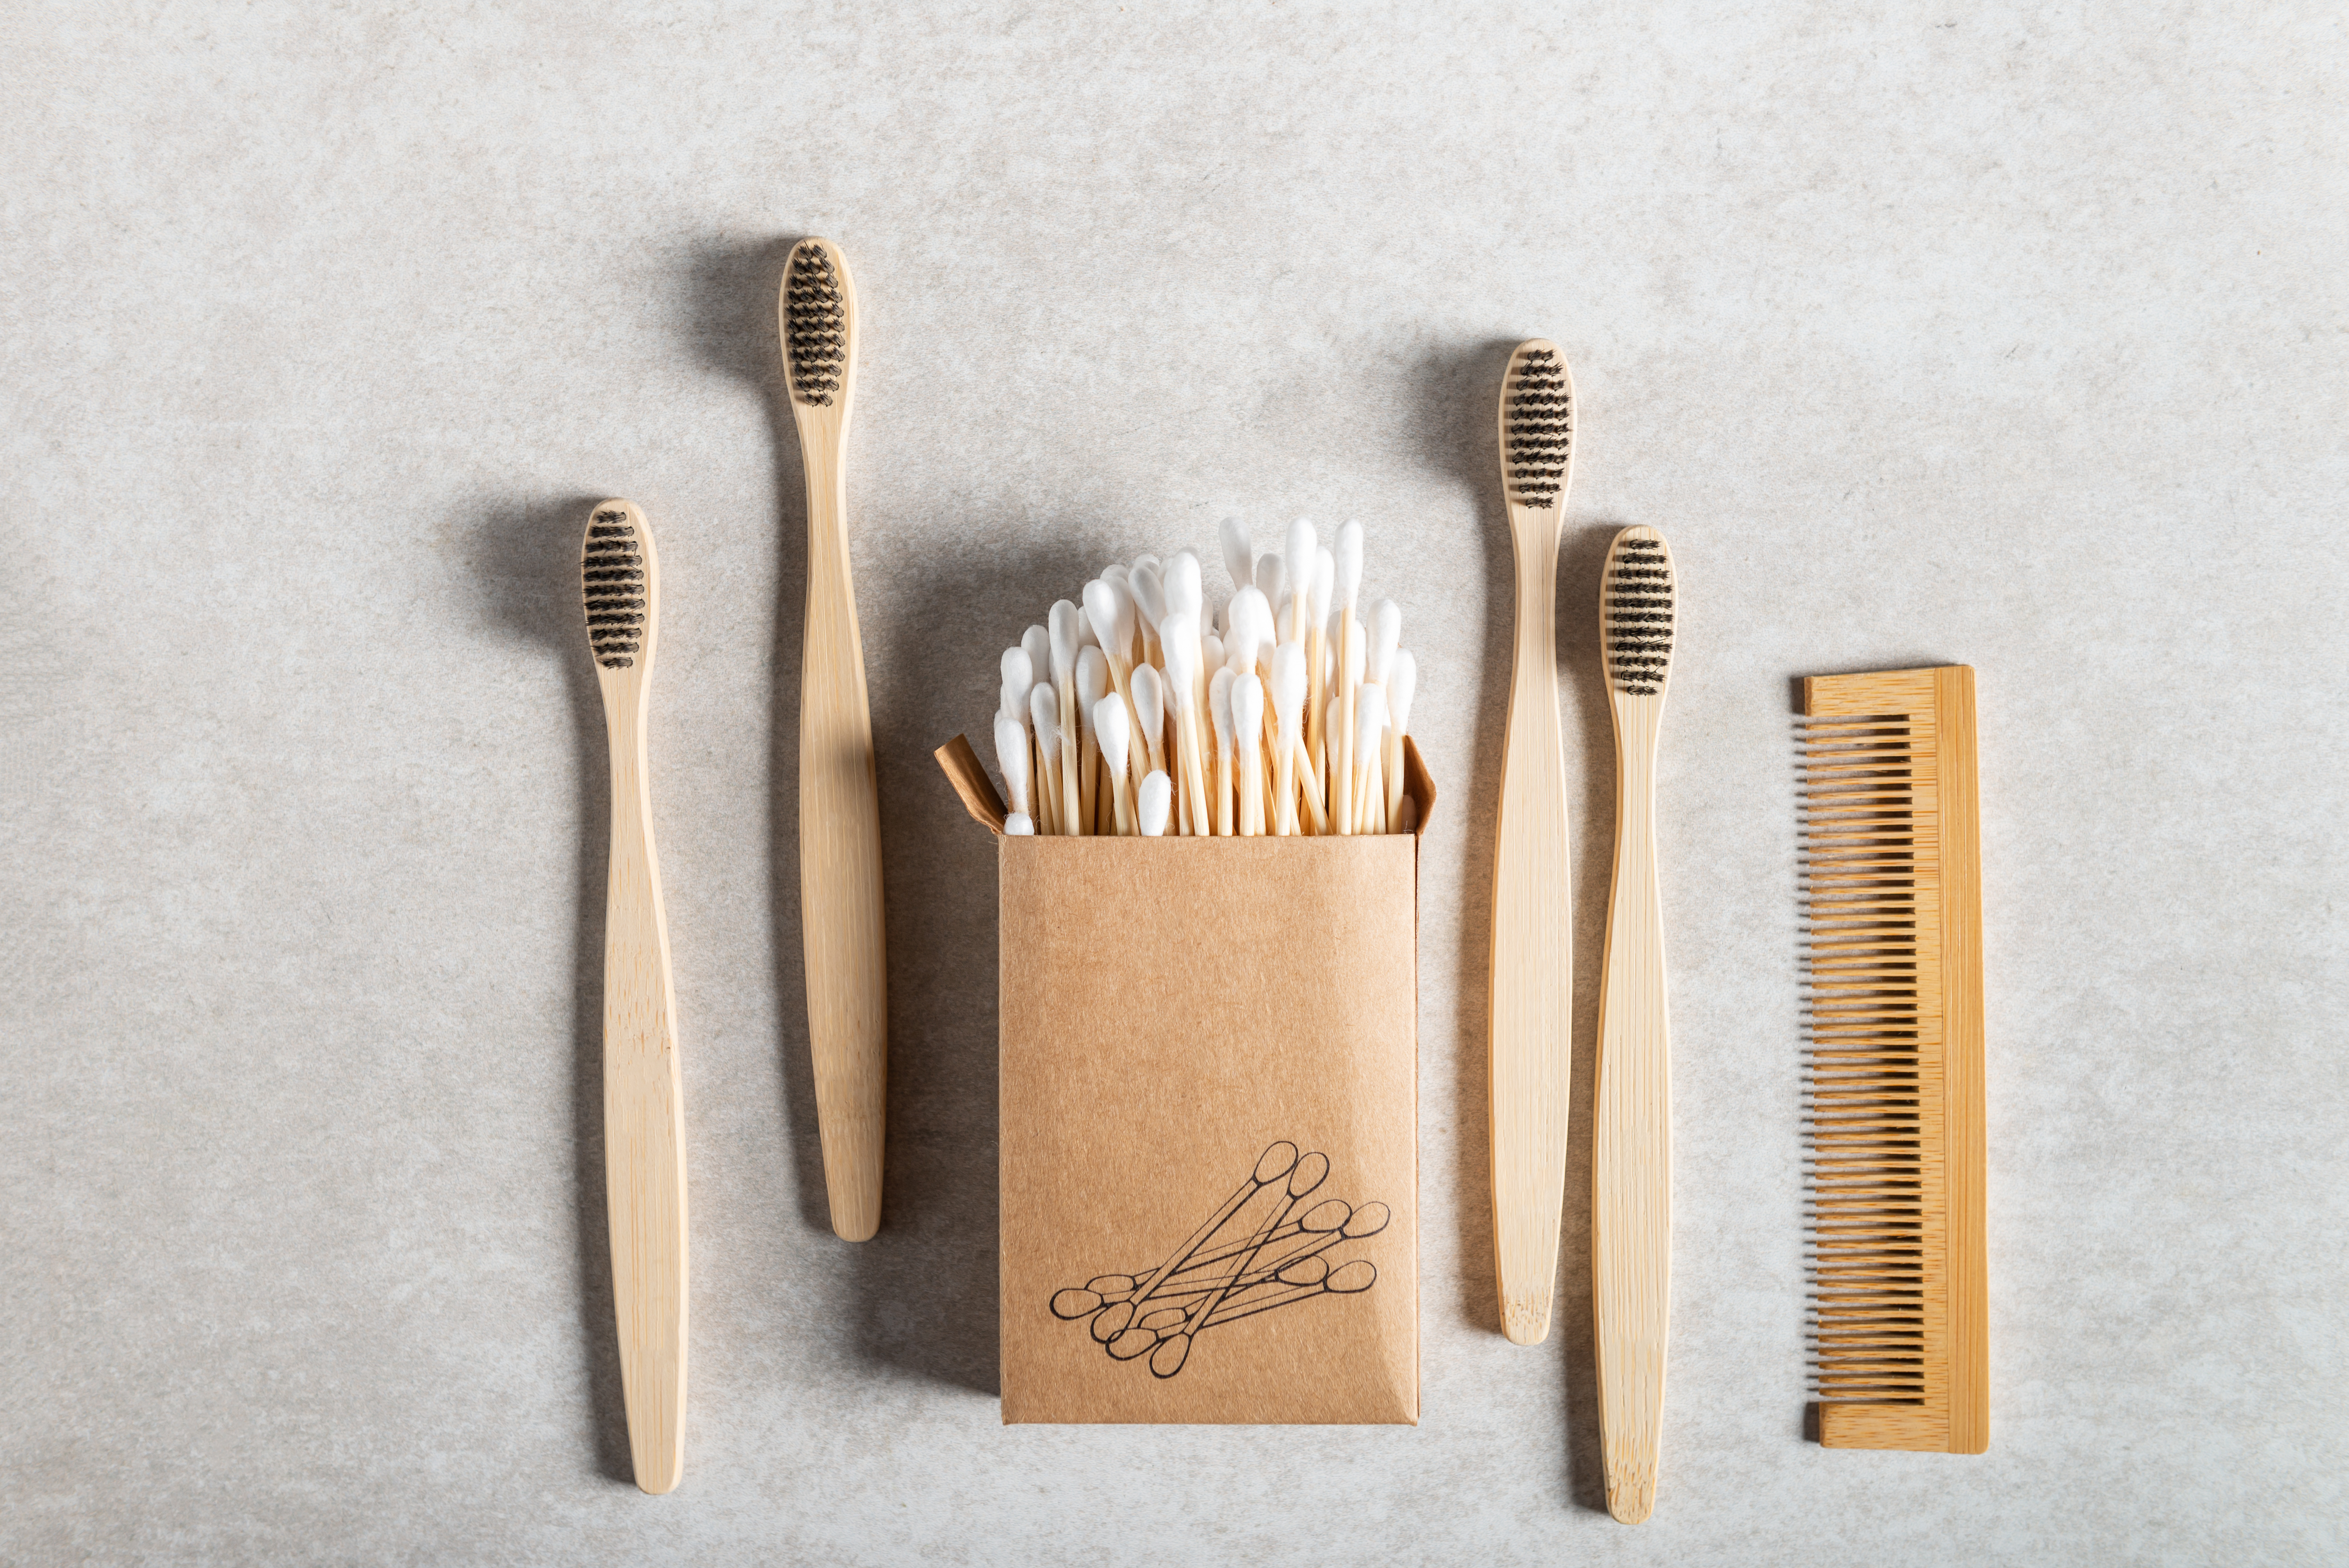 The Next Big Thing in Biodegradable Bamboo Toothbrush